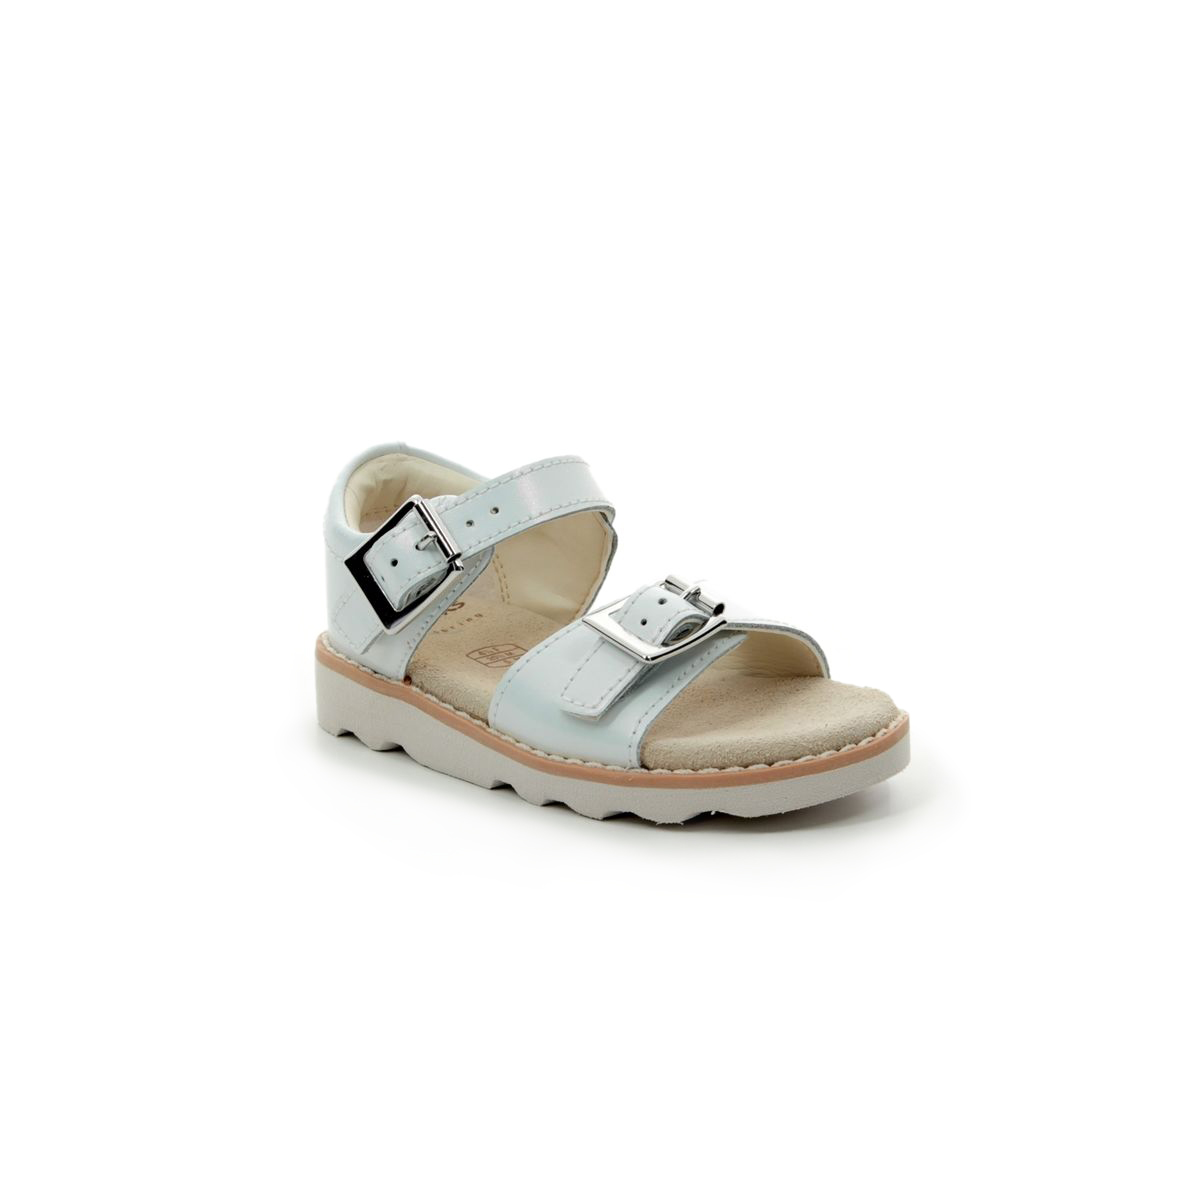 97661f251589 Clarks Sandals - Silver - 411226F CROWN BLOOM T